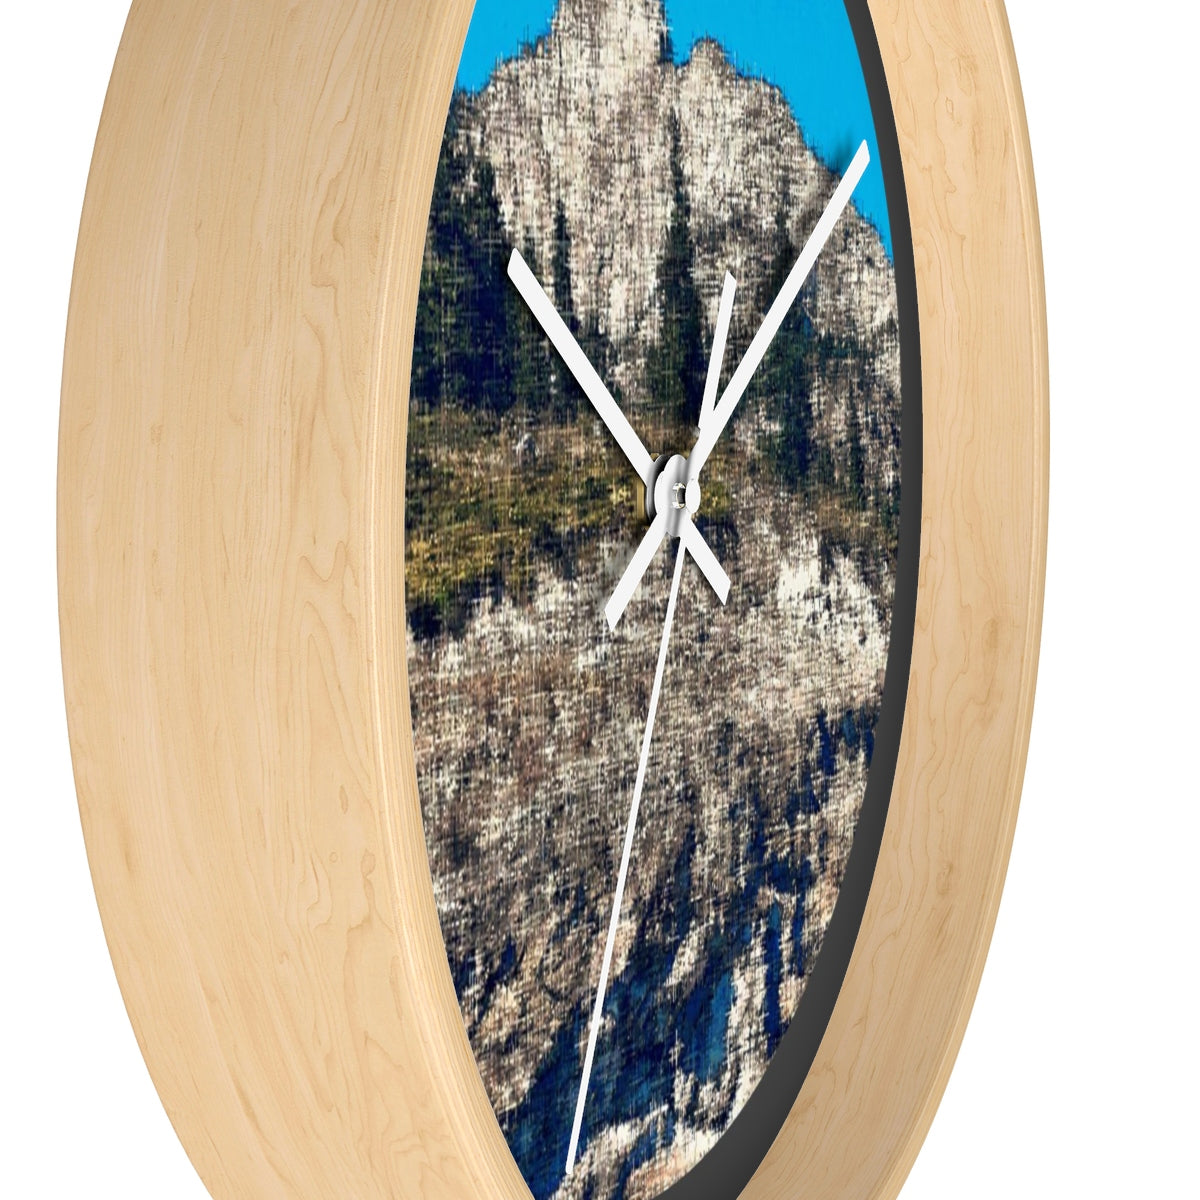 Wall clock - Altalabour | Designed by @remlor - Remlor Art